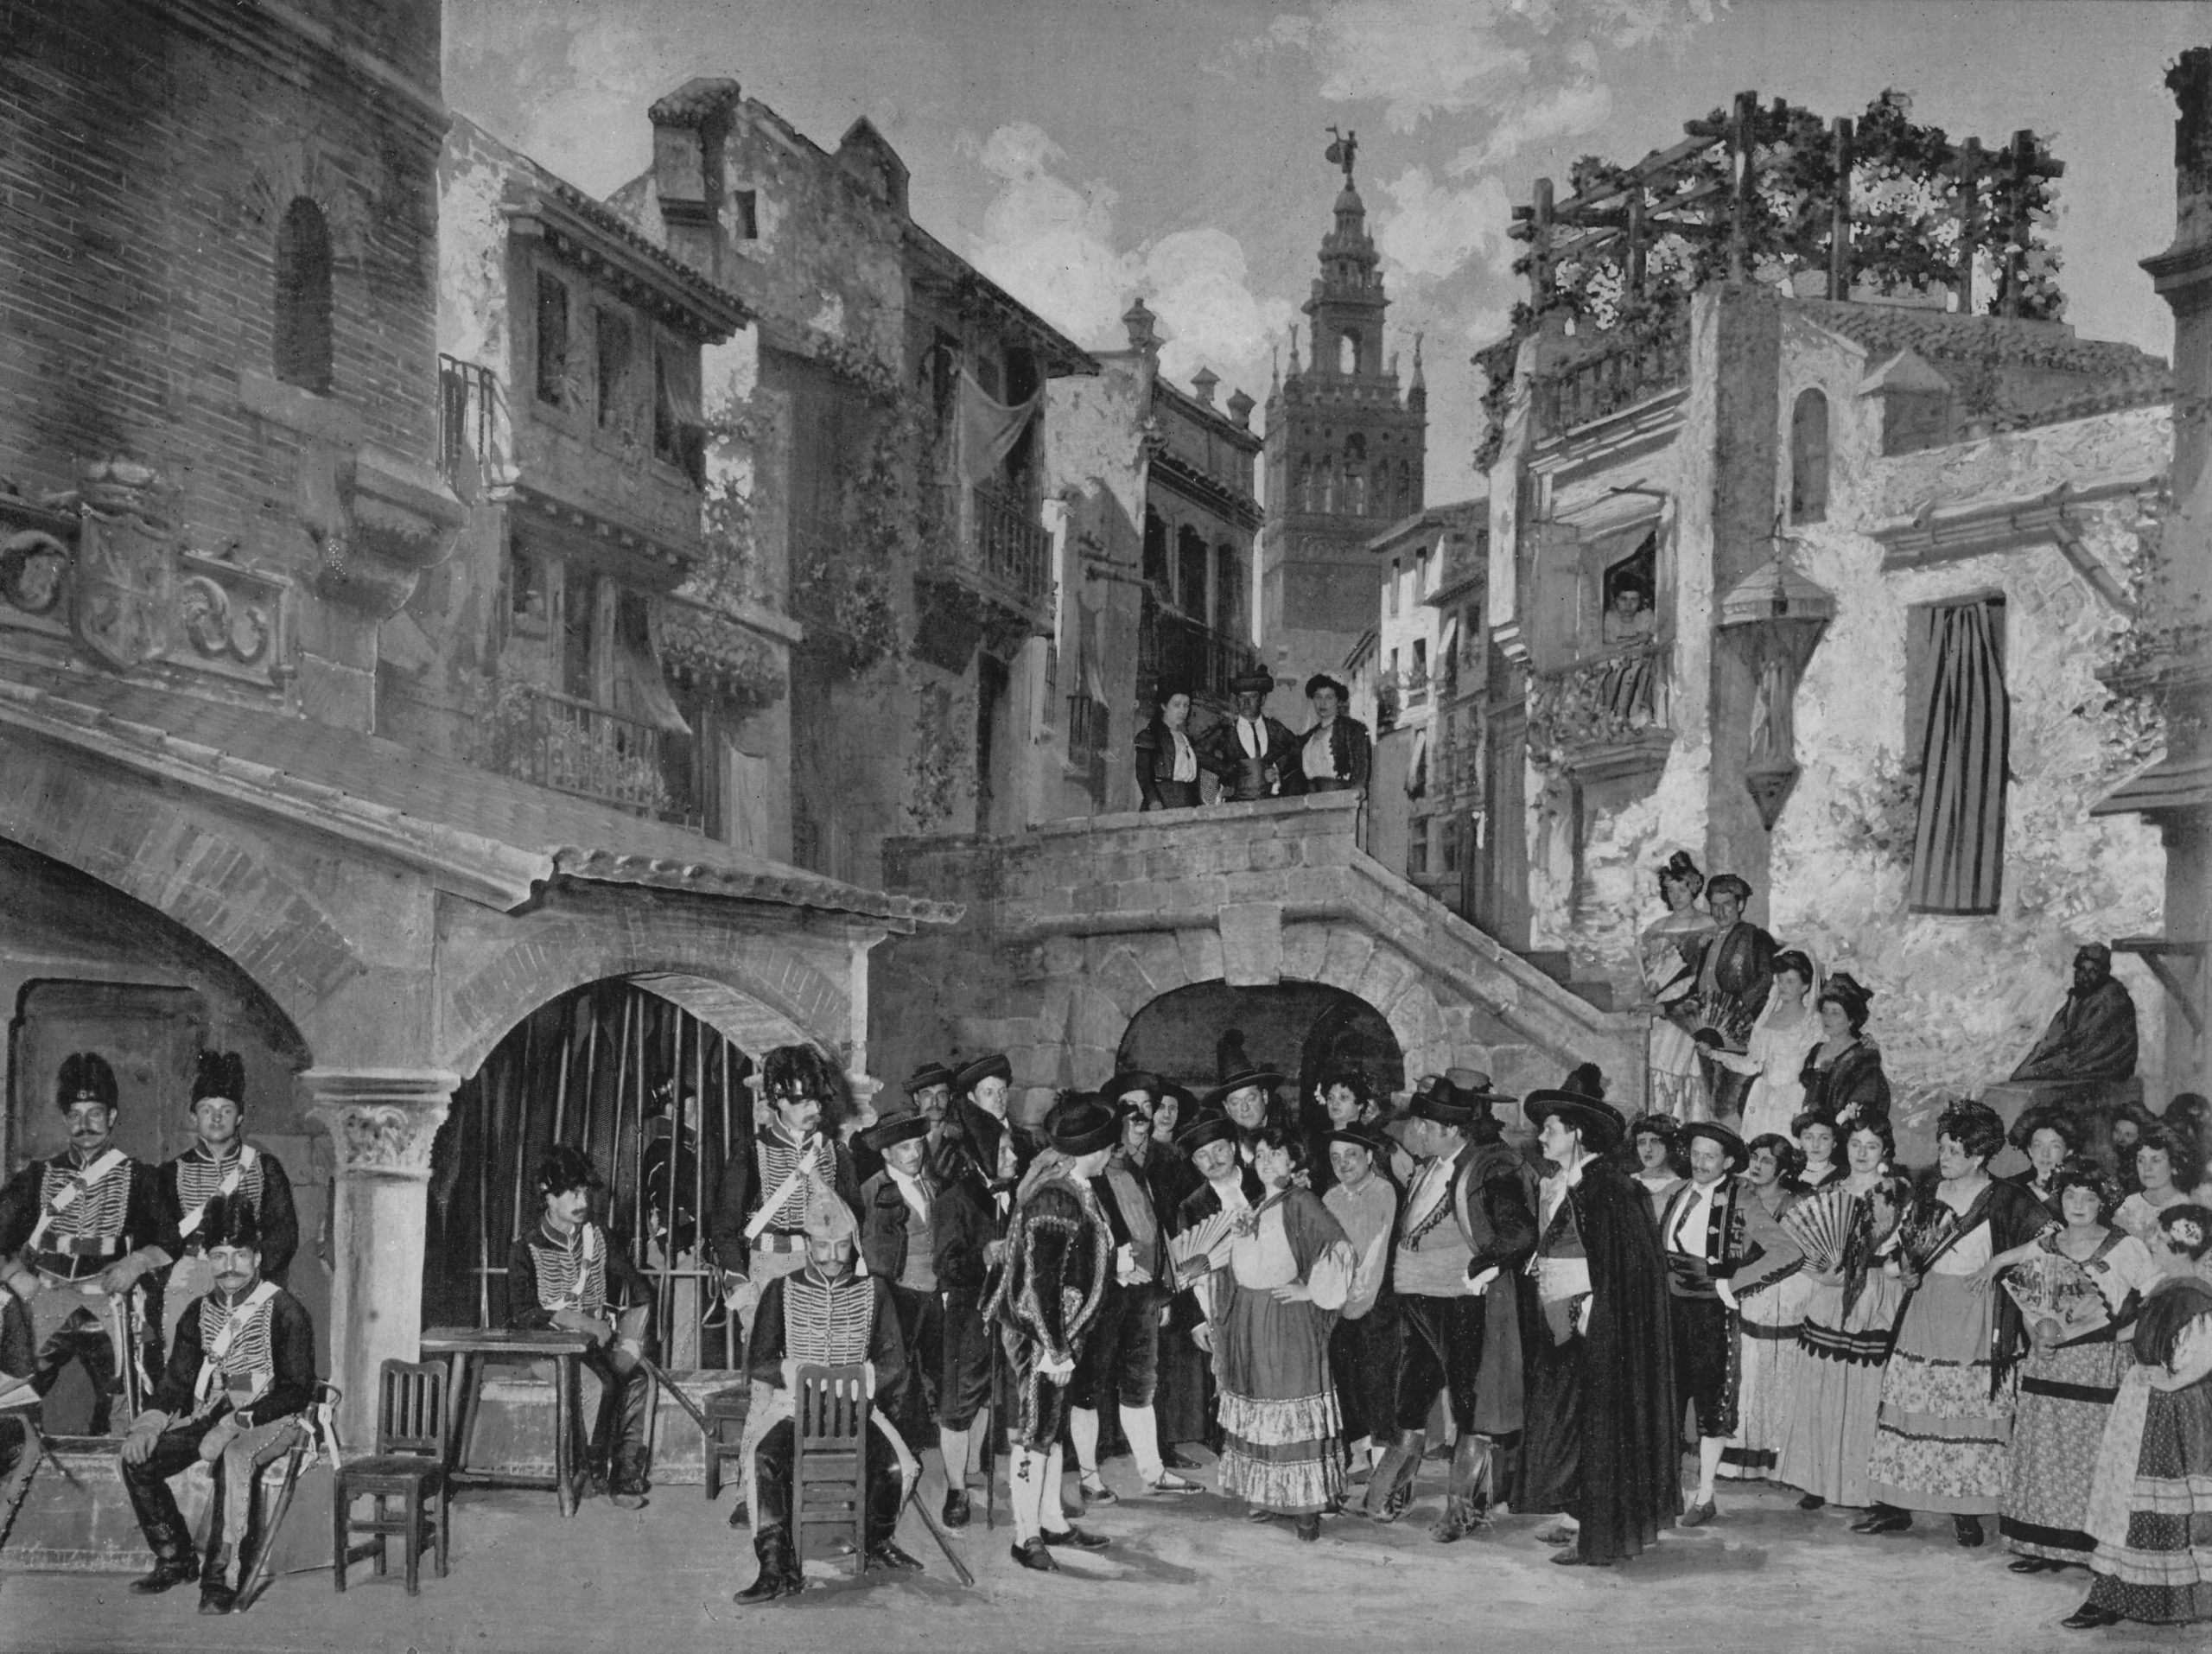 Acte I - Une place à Séville - photo Henri Mairet in Le théâtre 1905, Paris, 1898 Production Run